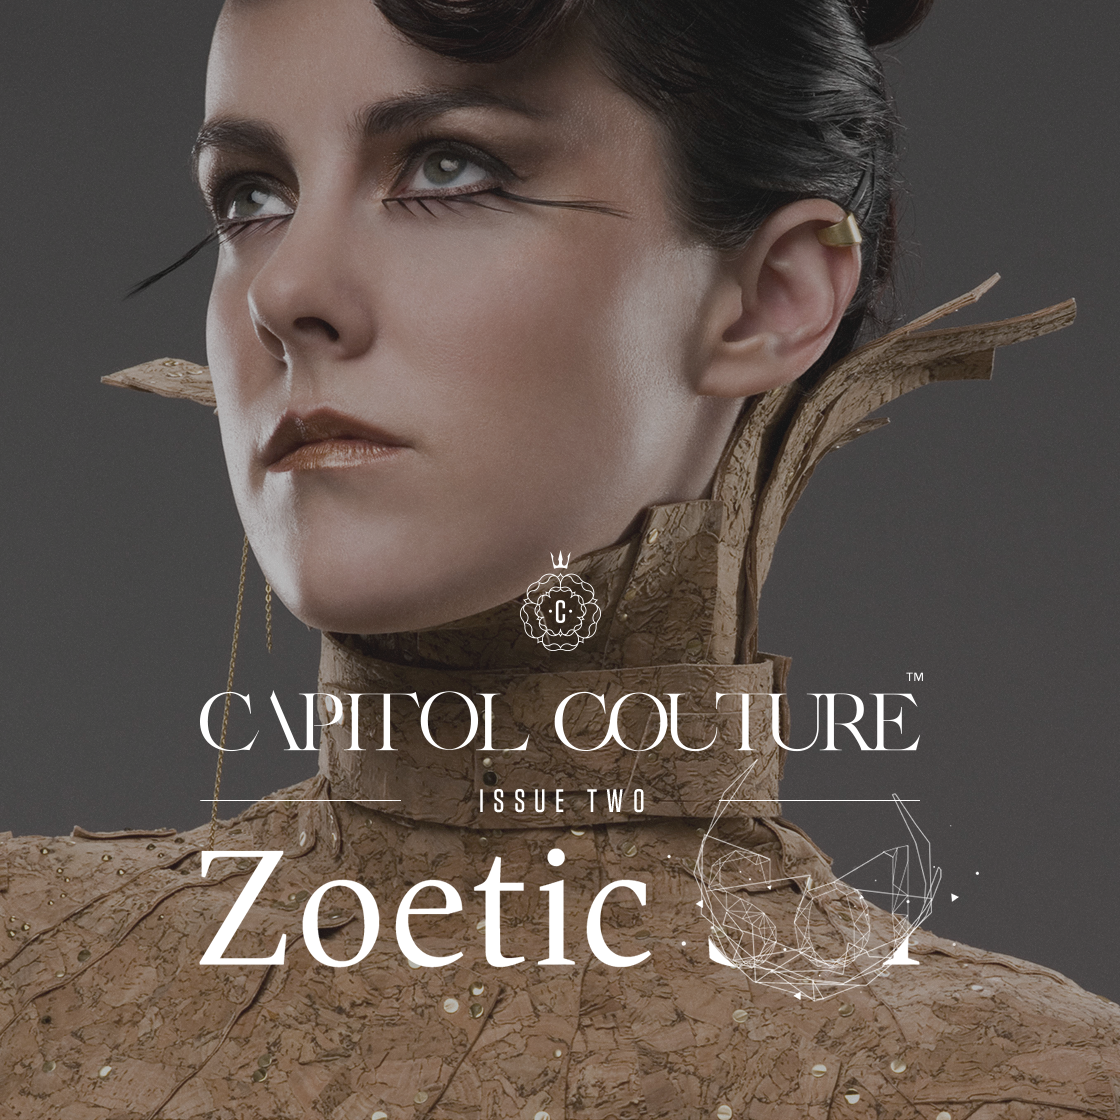 ZOETIC SOL: The #CapitolCouture Summer Issue has arrived, featuring a fierce look at the sly & stunning #JohannaMason! Be in-the-know on #CatchingFire's noteworthy designers & unearth the hottest #OhSoCapitol fashion. - www.capitolcouture.pn